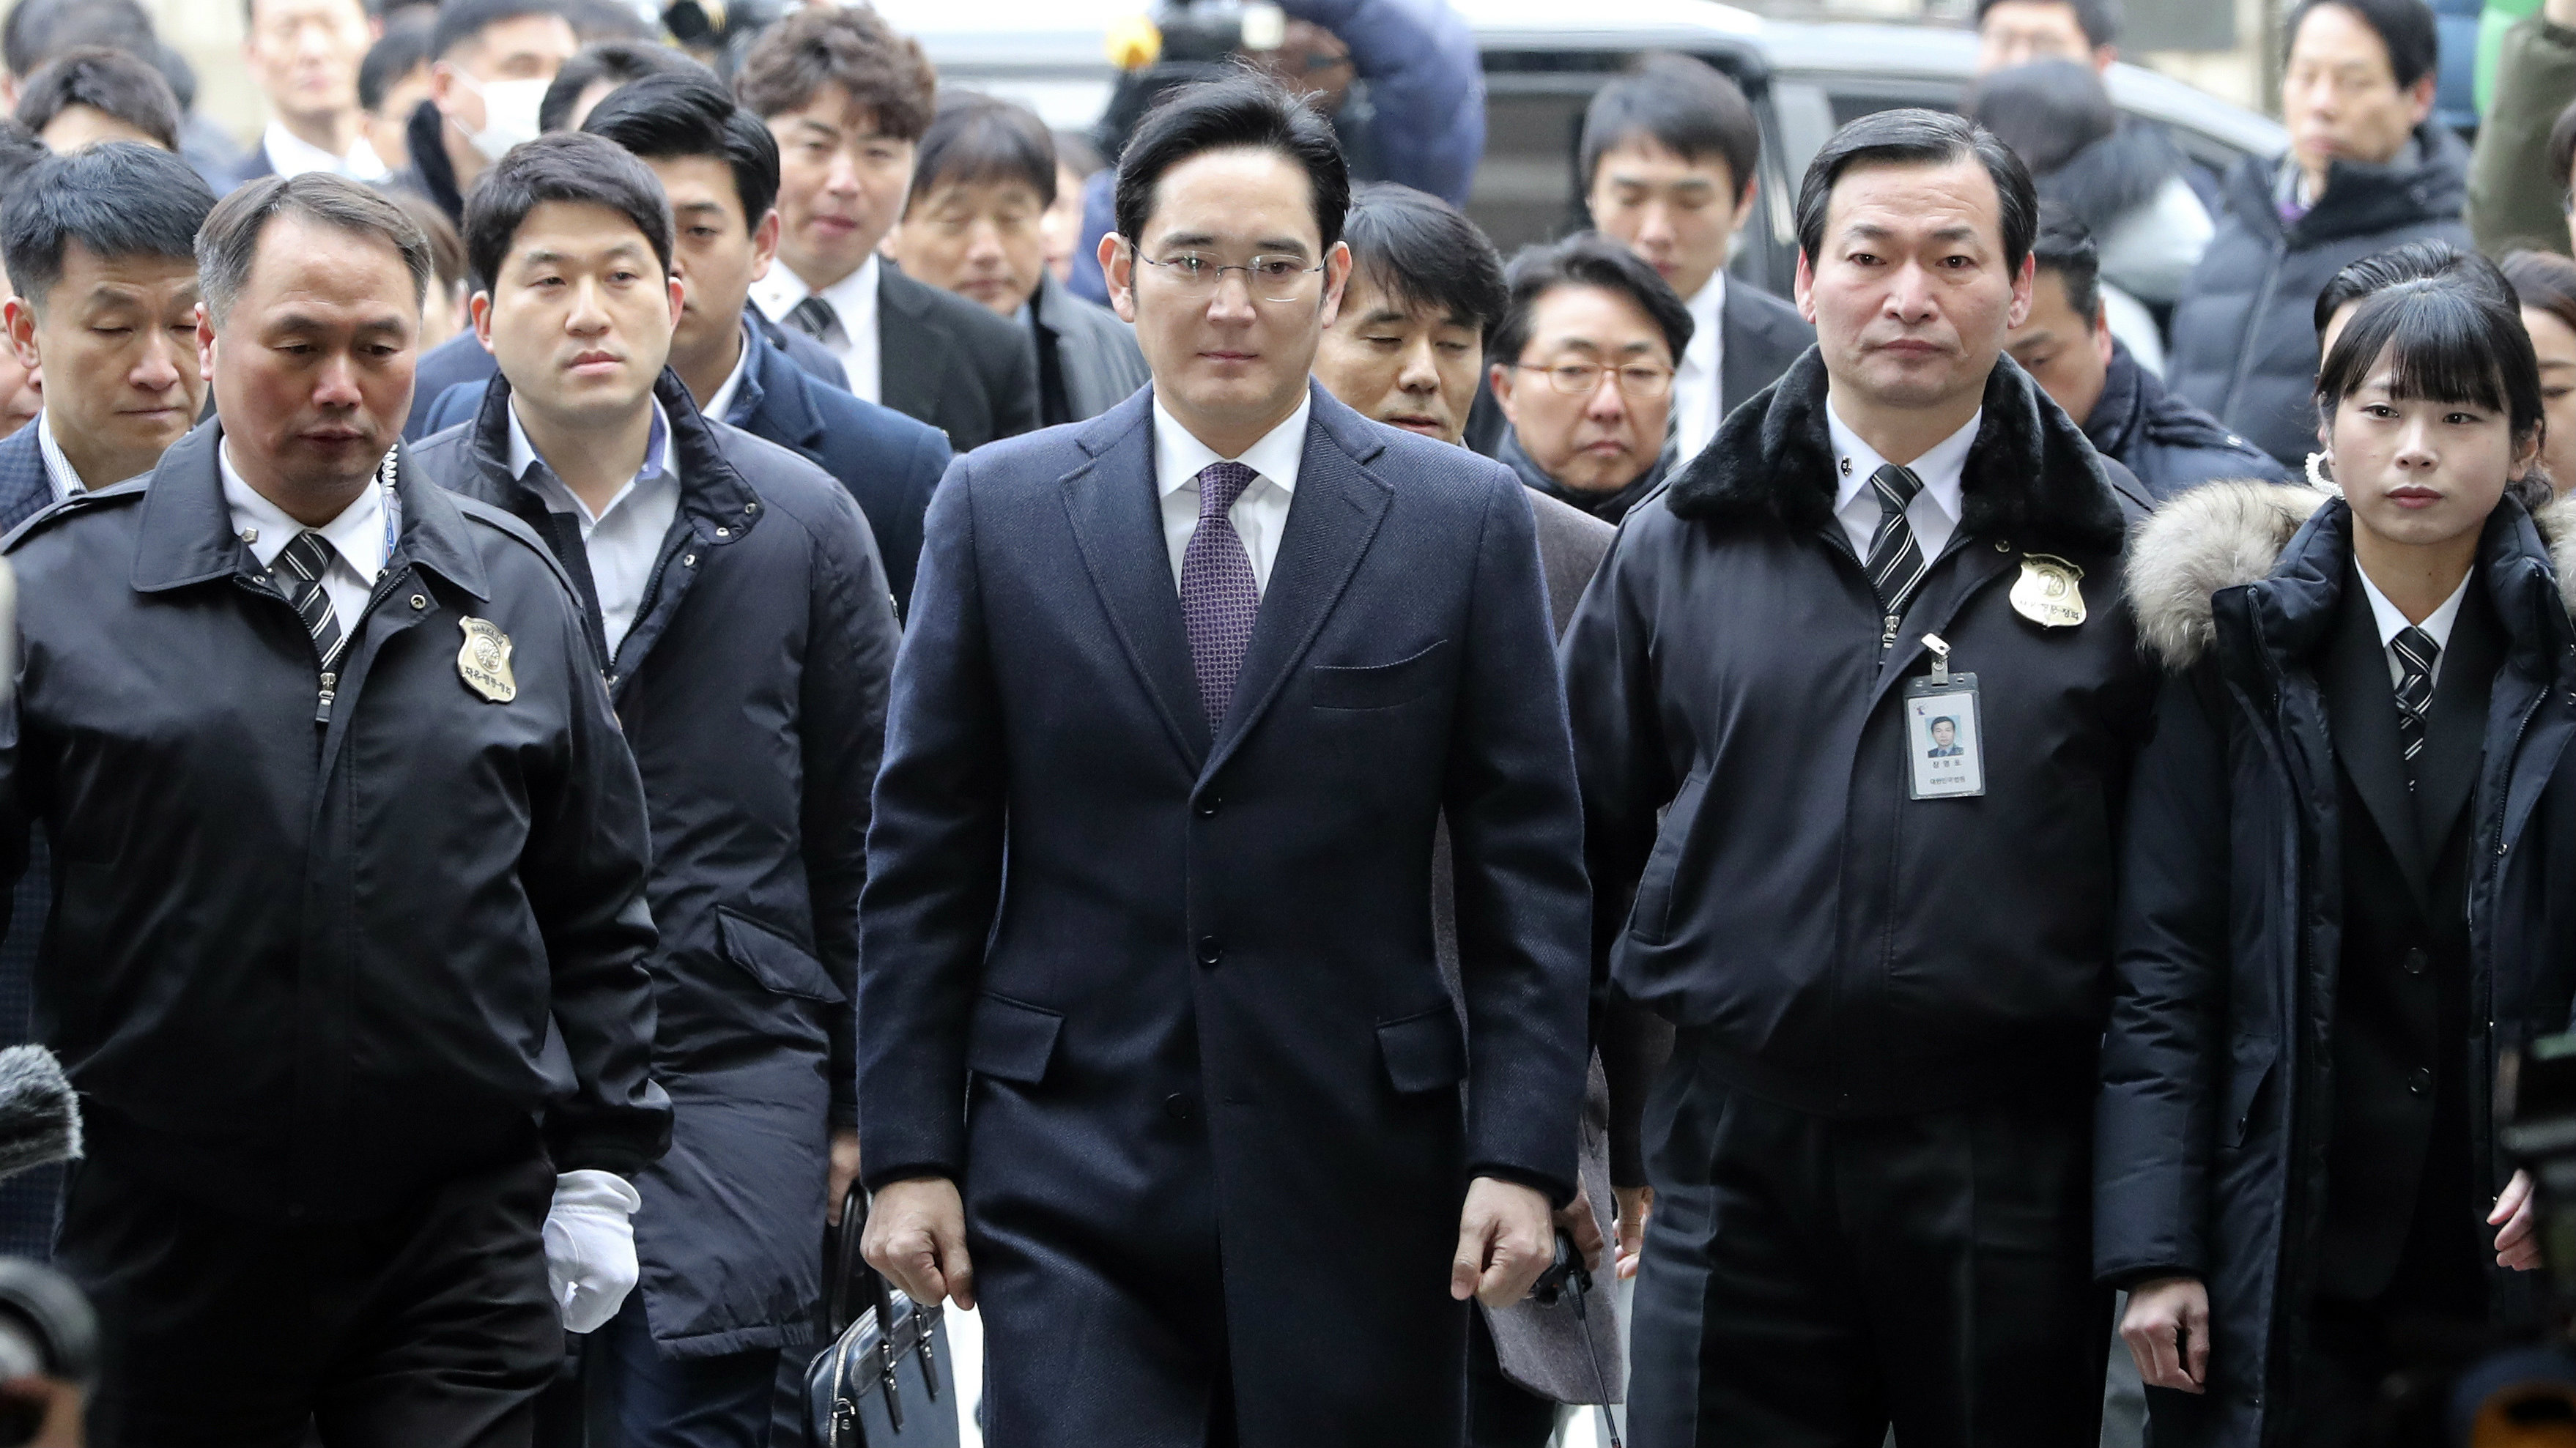 Samsung vice chairman Lee Jae Yong has avoided arrest in South Korea.